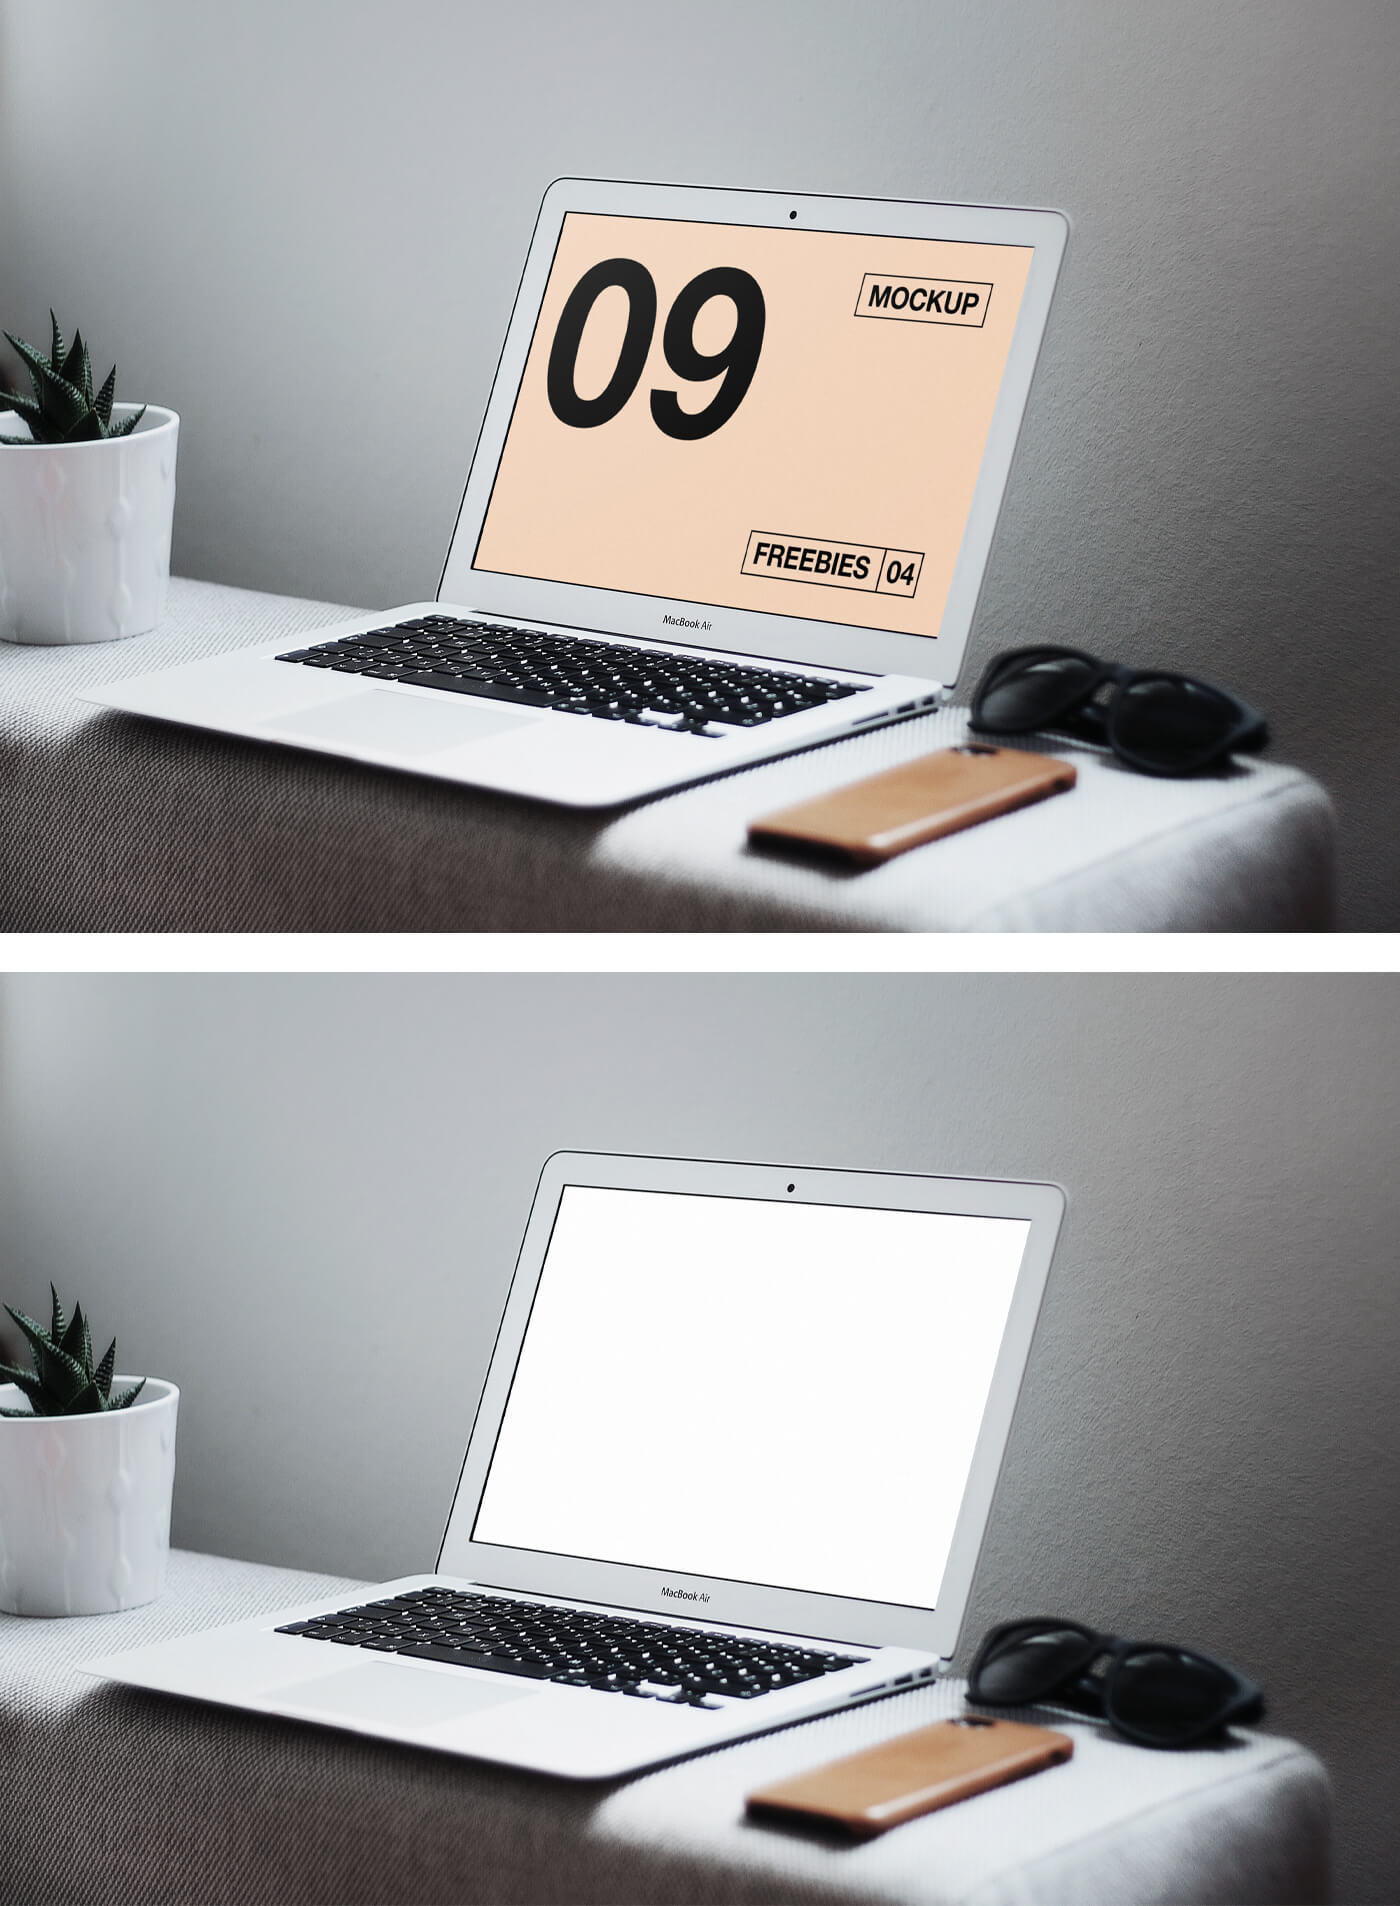 Free Wonderful MacBook Air on Table Mockup PSD Template